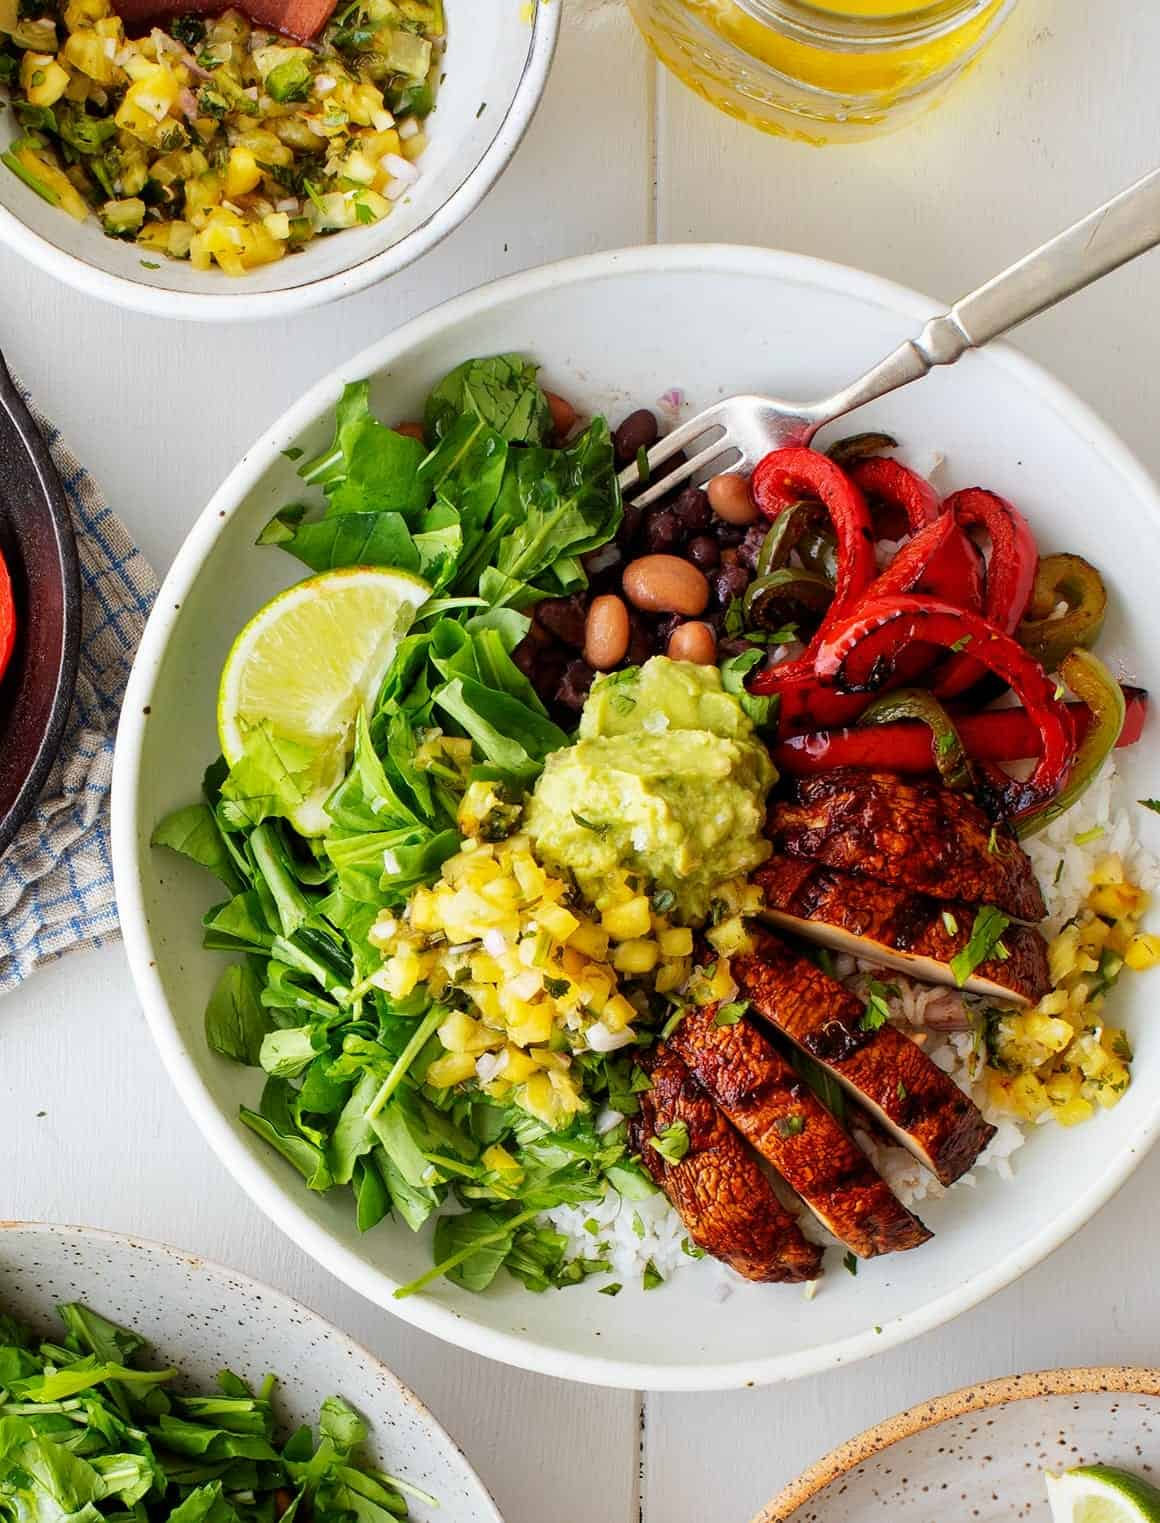 Healthy Game Day Recipes - Portobello Fajita Burrito Bowls